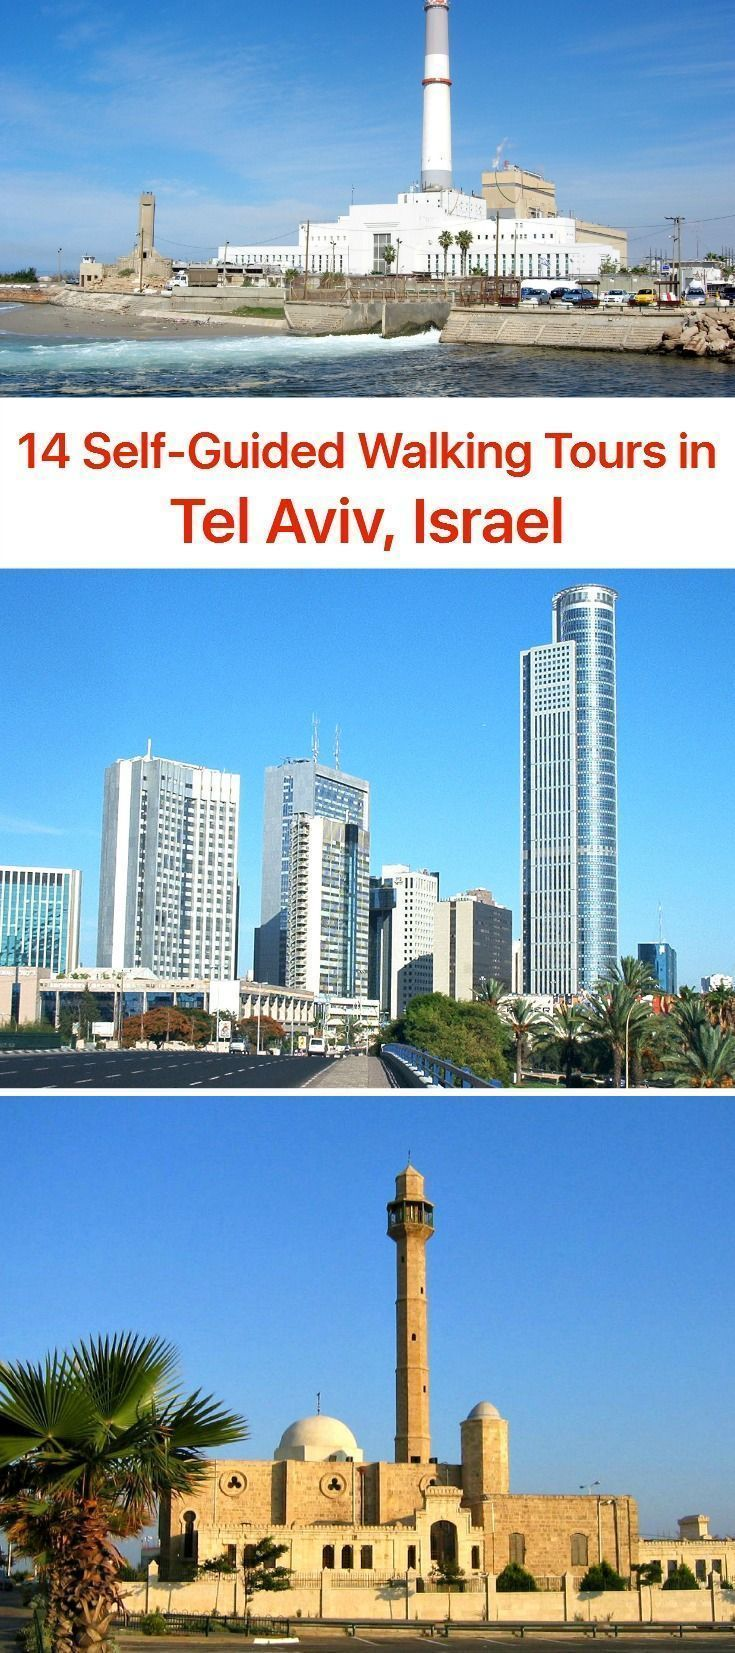 """Unlike Jerusalem that is all about religion, Tel Aviv – the capital of Israel – is all about """"earthly matters"""" and joys of life. Nicknamed """"the White City"""" for its architectural side dominated by 1930s Bauhaus buildings, Tel Aviv enjoys Mediterranean lifestyle manifested in numerous cafes, shops and restaurants lining the city's famous waterfront promenade."""